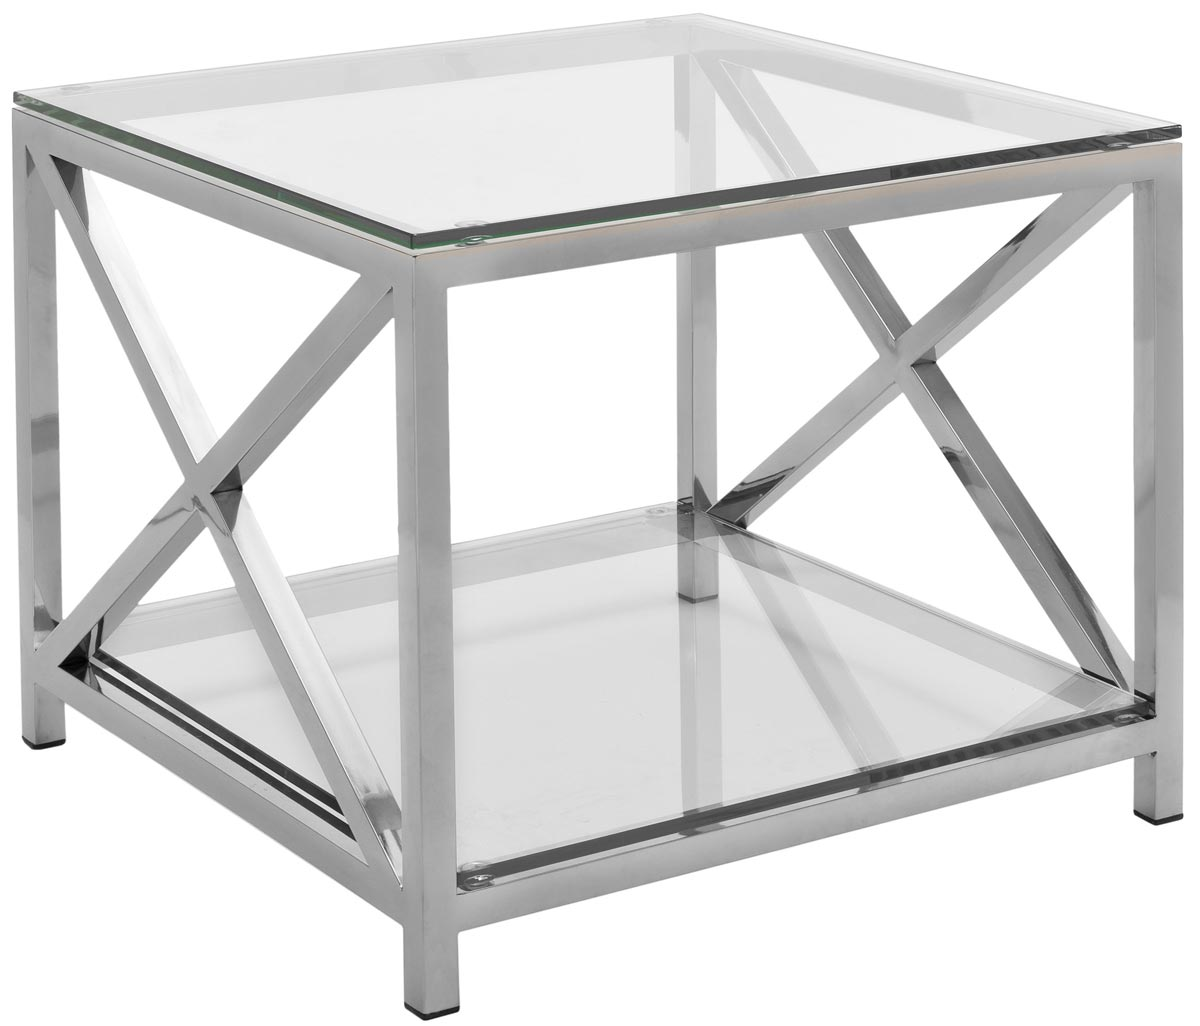 stainless steel chrome glass accent table safavieh white end hayward top couture power cord types cream lamp tables for living room metal base legs bar stools black and silver